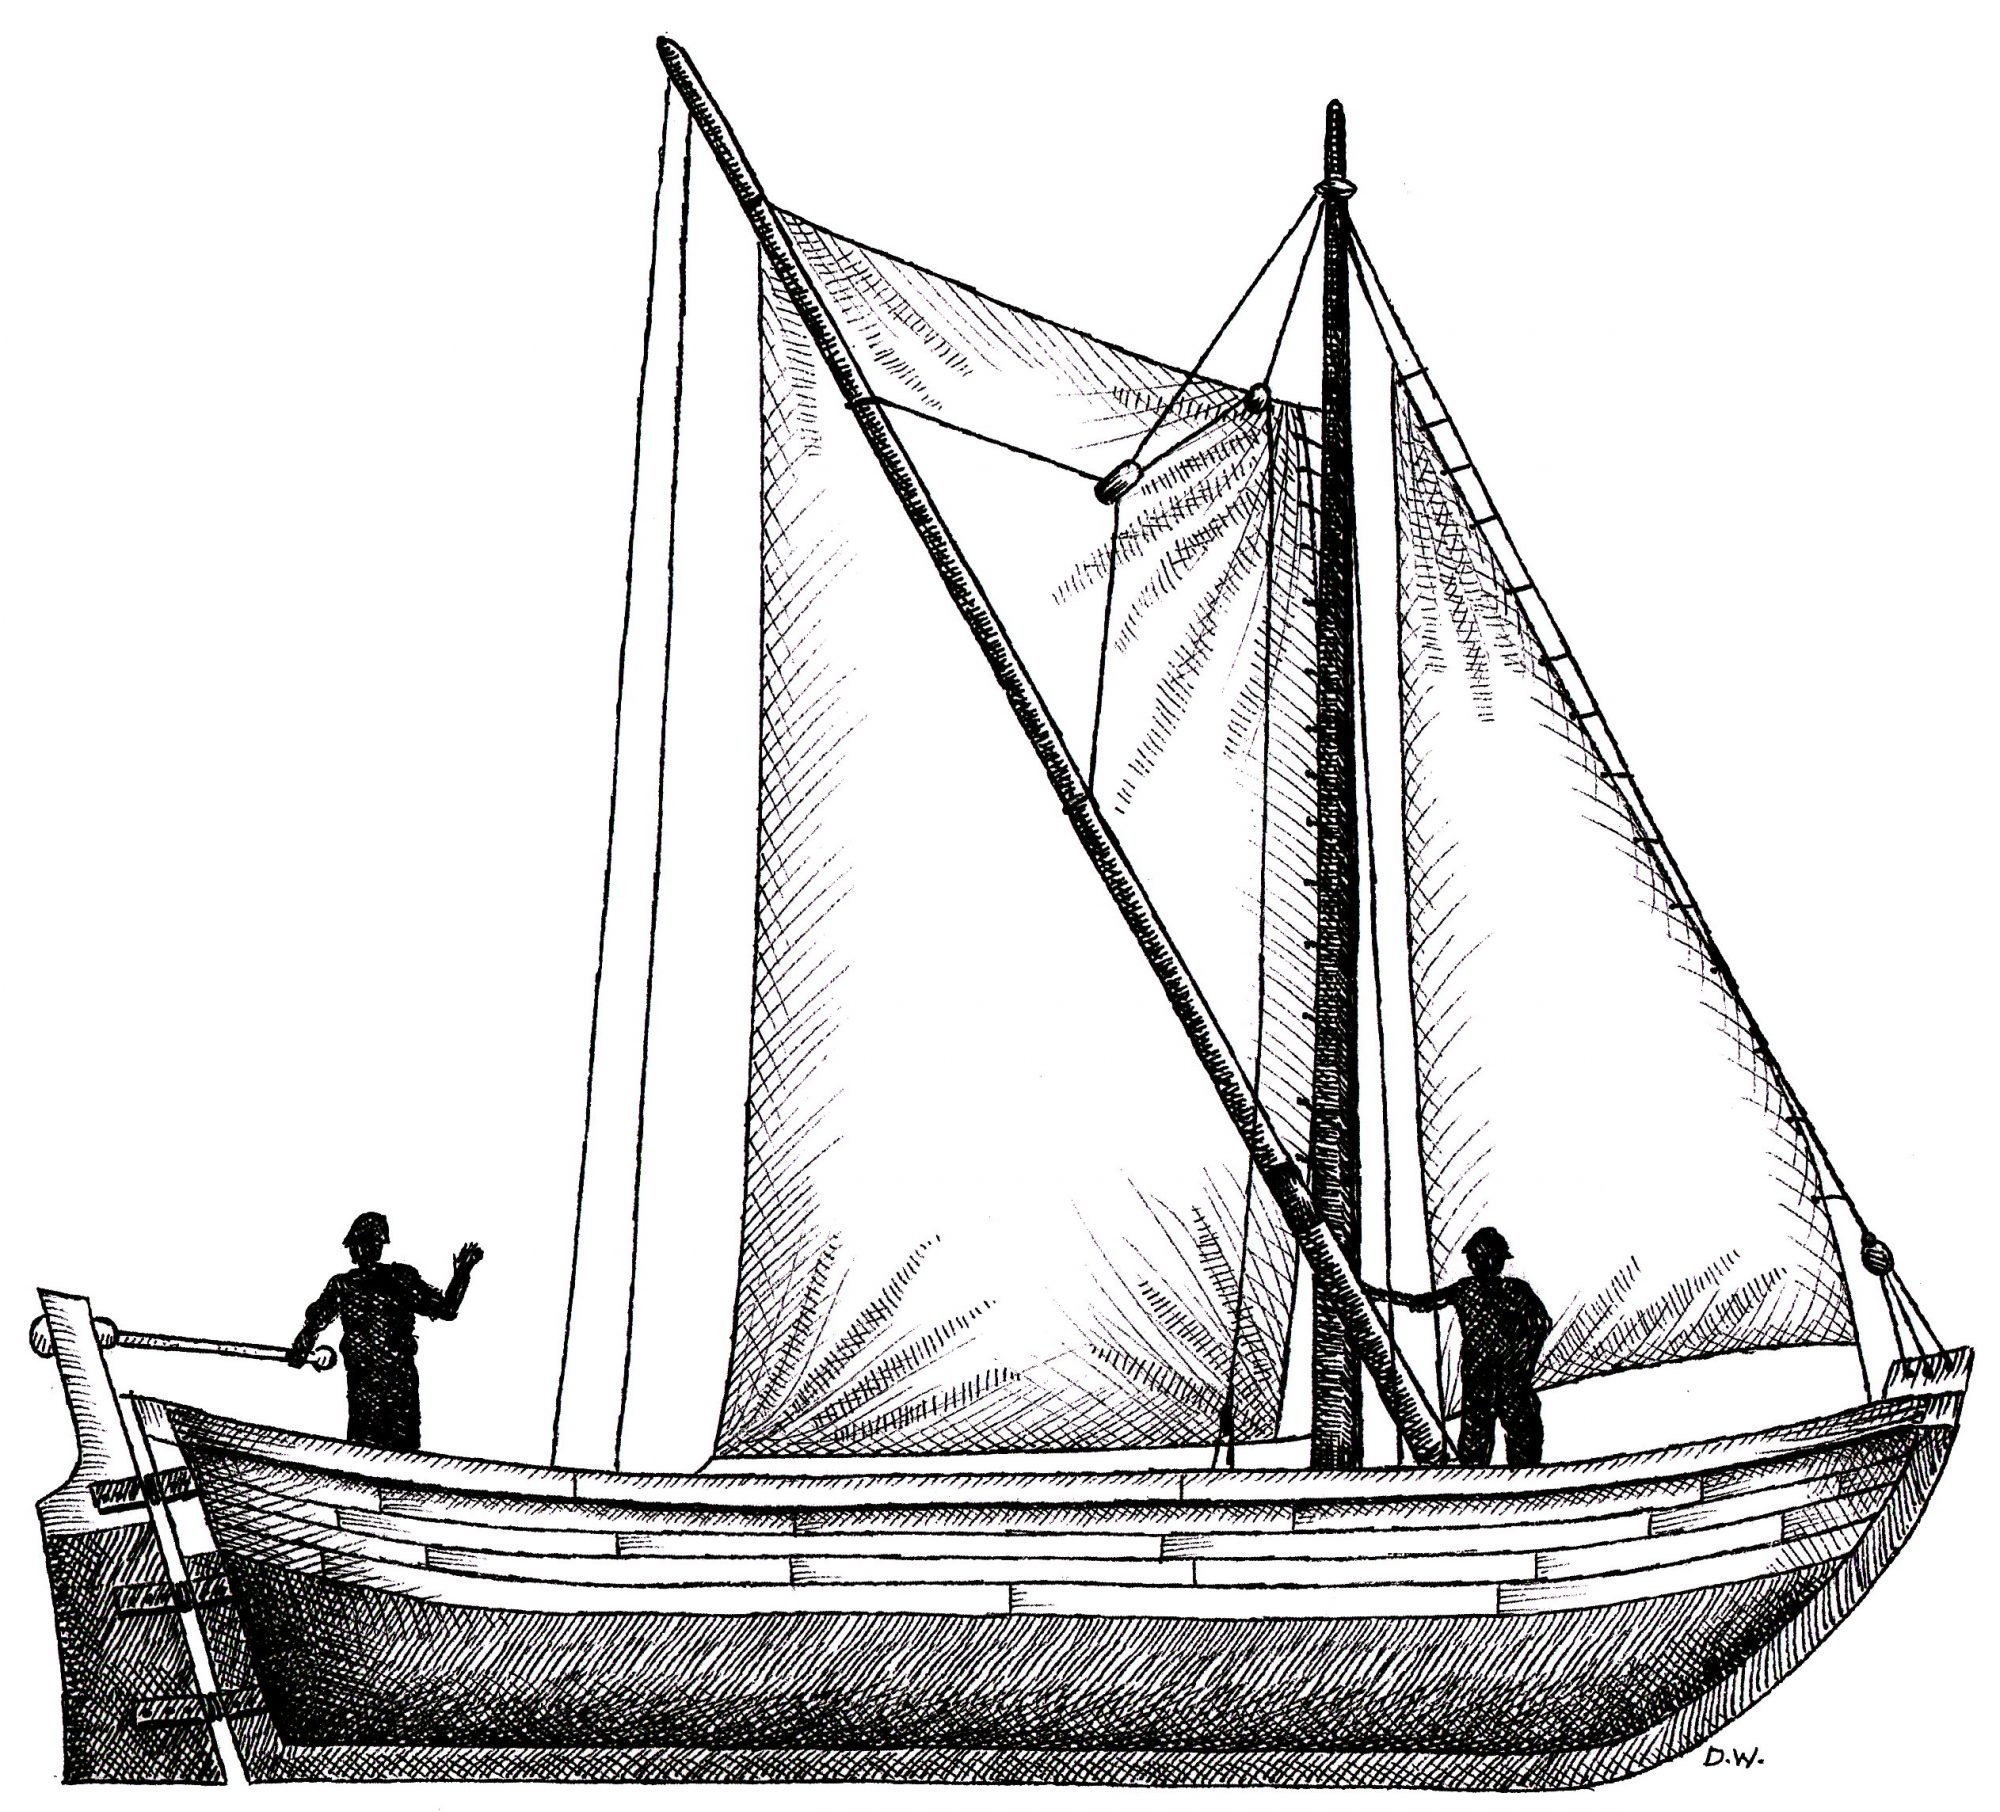 Shallop boat -- the small sailboat brought by the pilgrims on the Mayflower